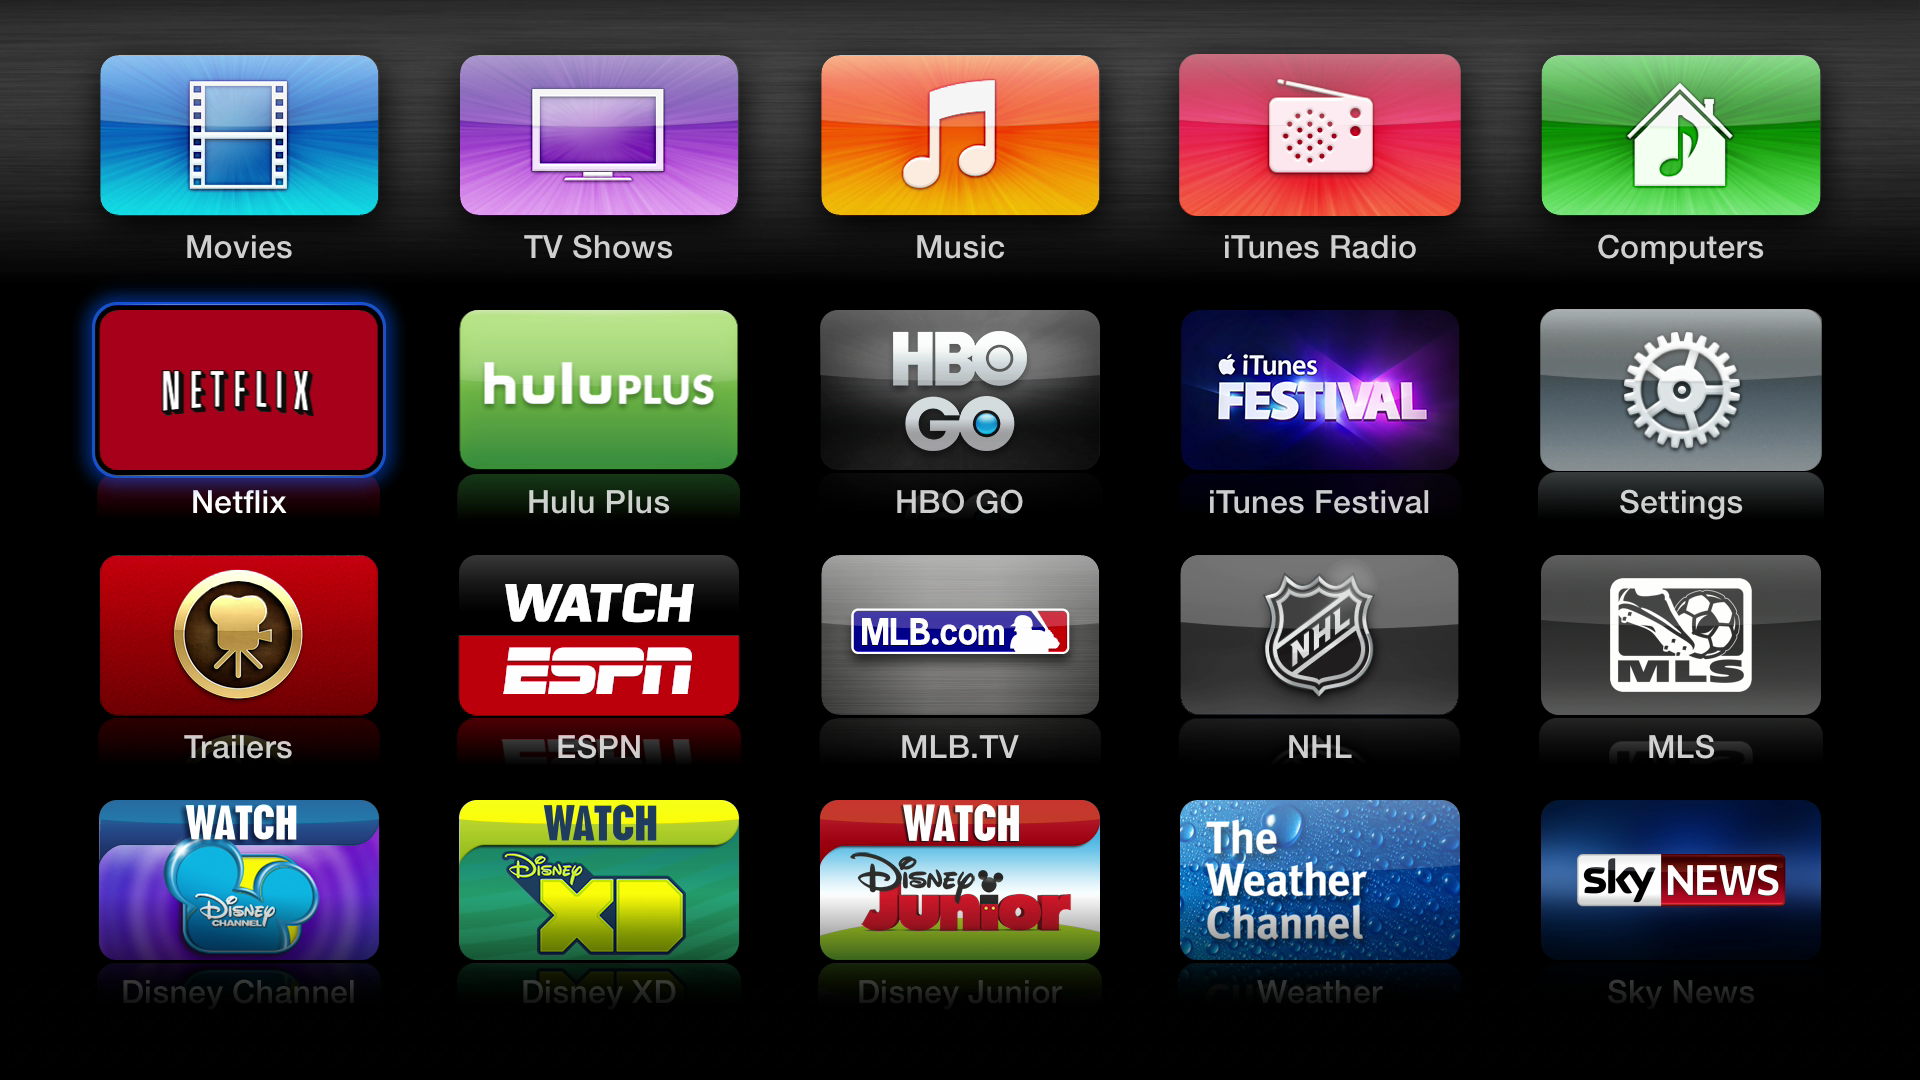 Figure 1: The first page of built-in Apple TV apps. The top row is always visible, and those apps cannot be moved.